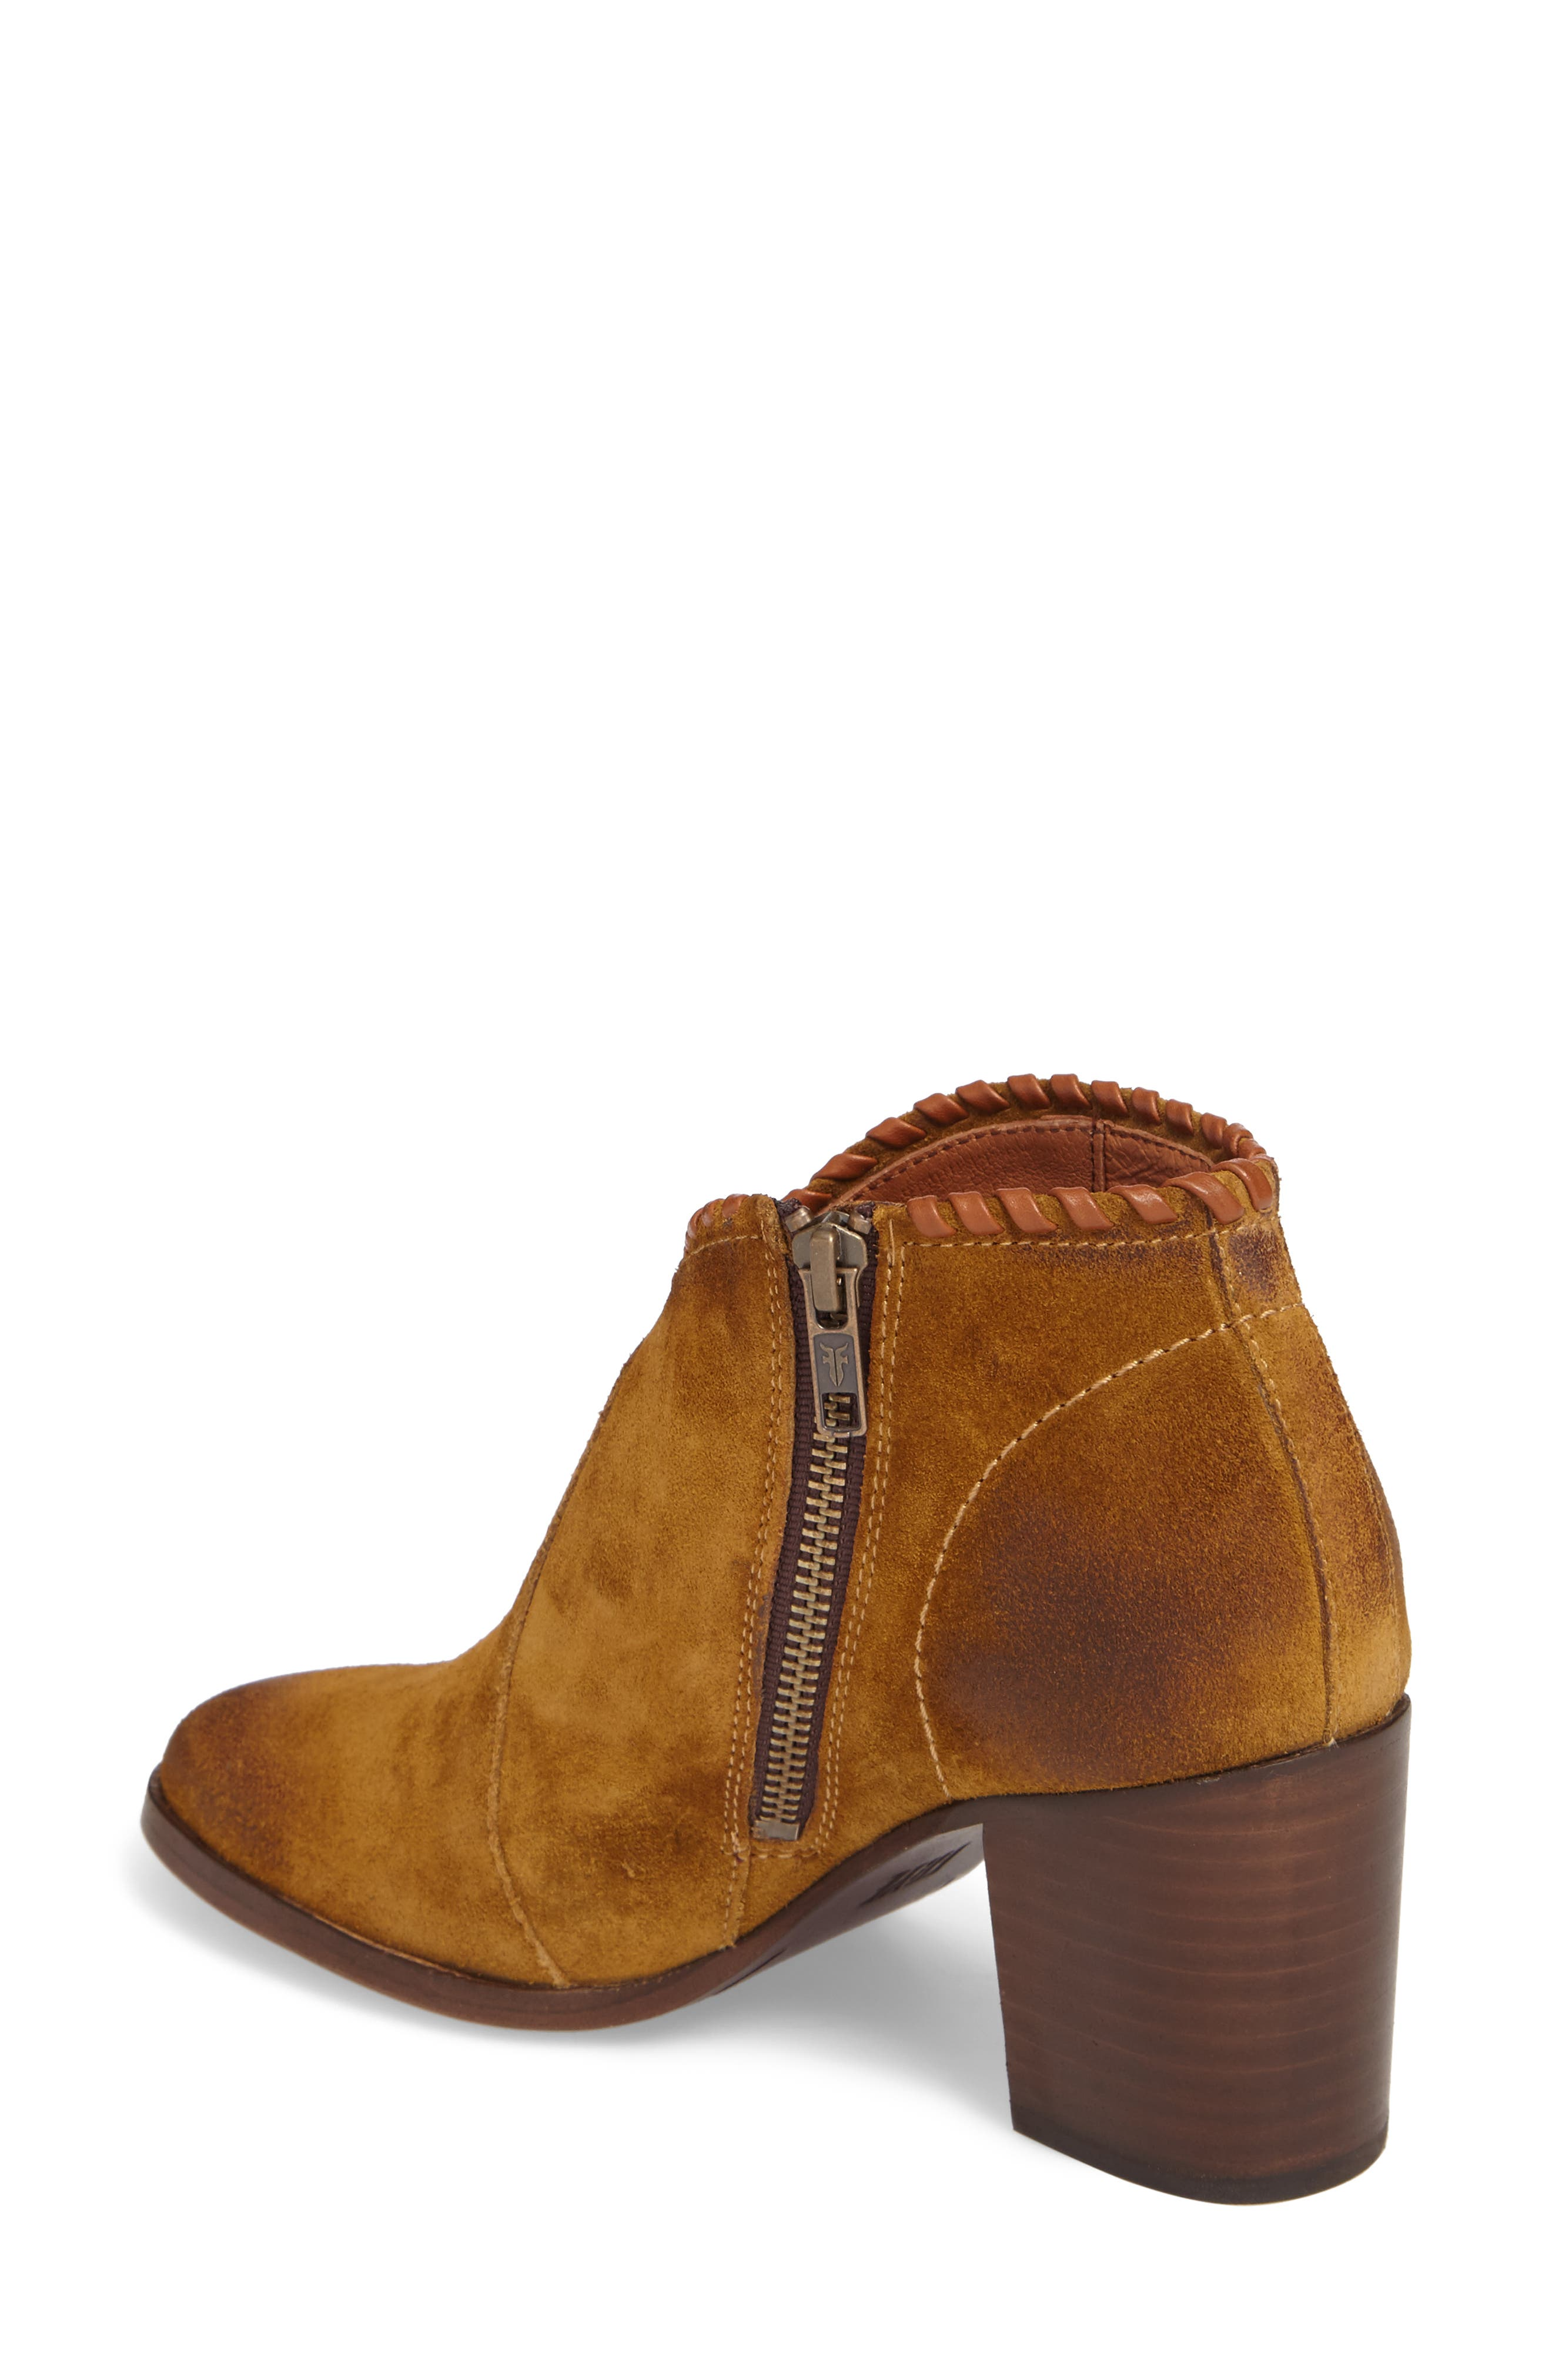 Nora Whipstitch Bootie,                             Alternate thumbnail 2, color,                             Wheat